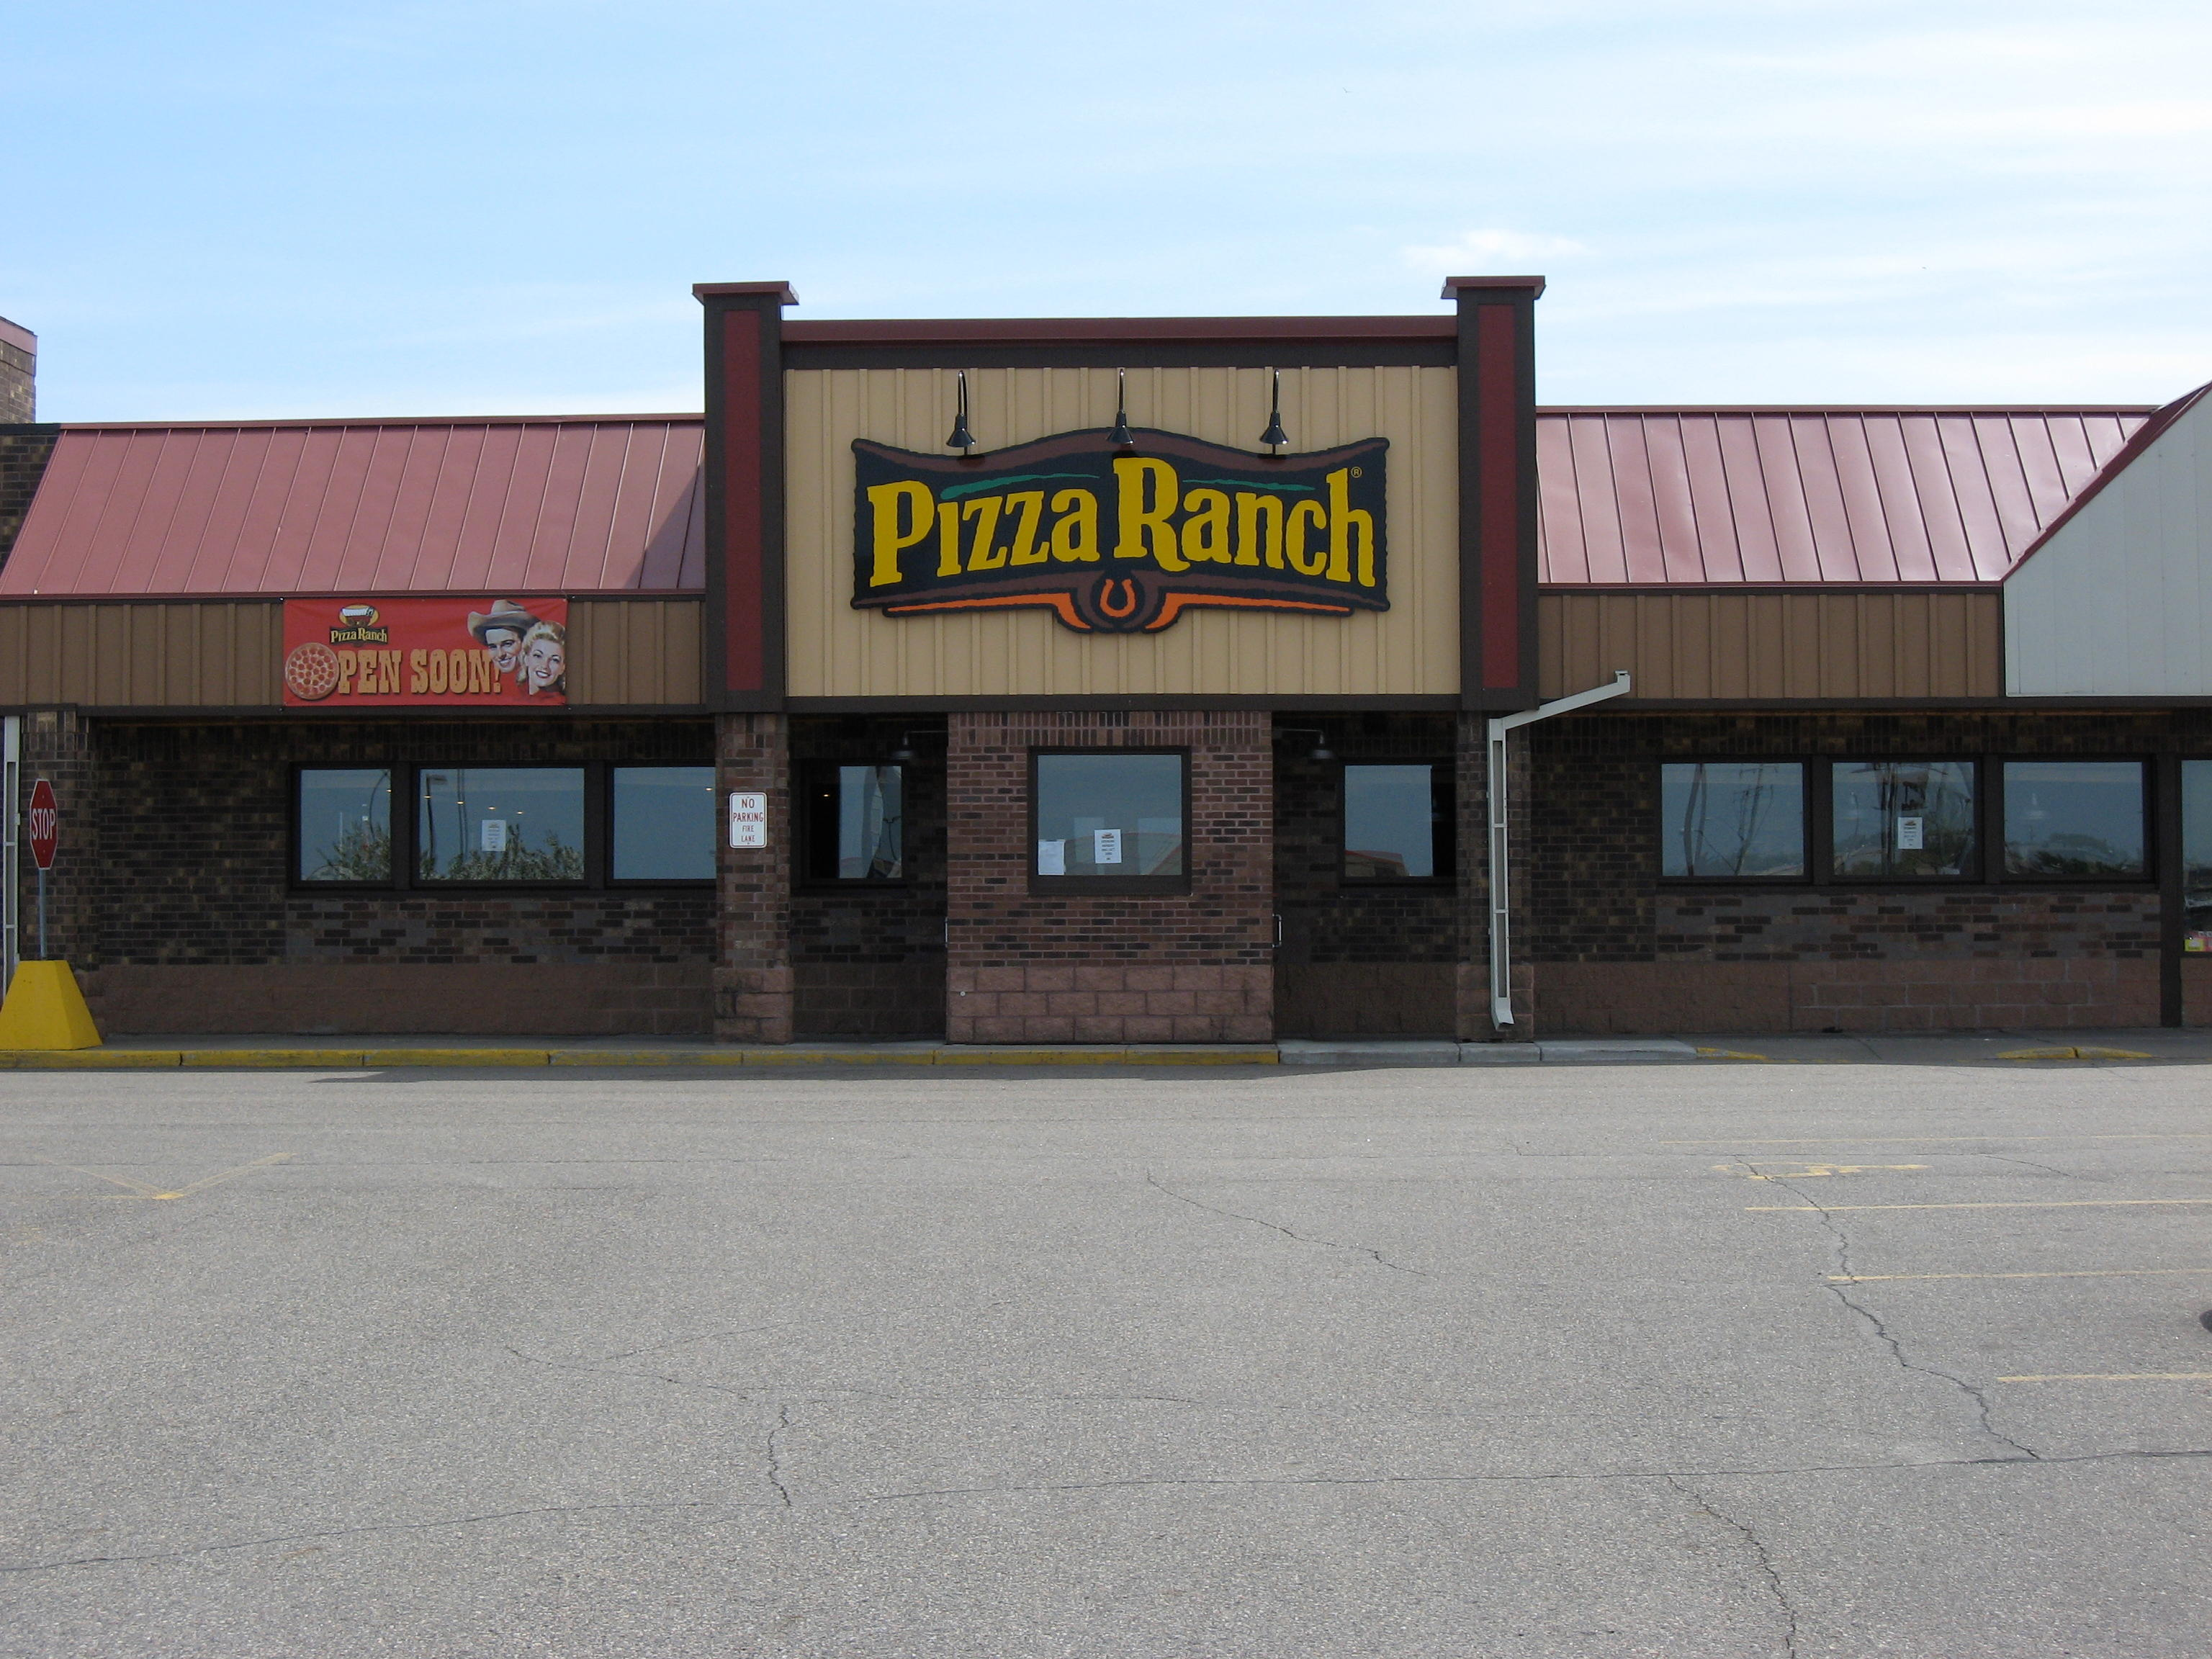 Pizza ranch is an all you can eat buffet with fries chicken and pizza. The pizza is tasty and you can request one of their specialty flavors if you want (I always ask for their buffalo chicken one). If you eat here regularly, you can save money with their free pizza club card/5(18).